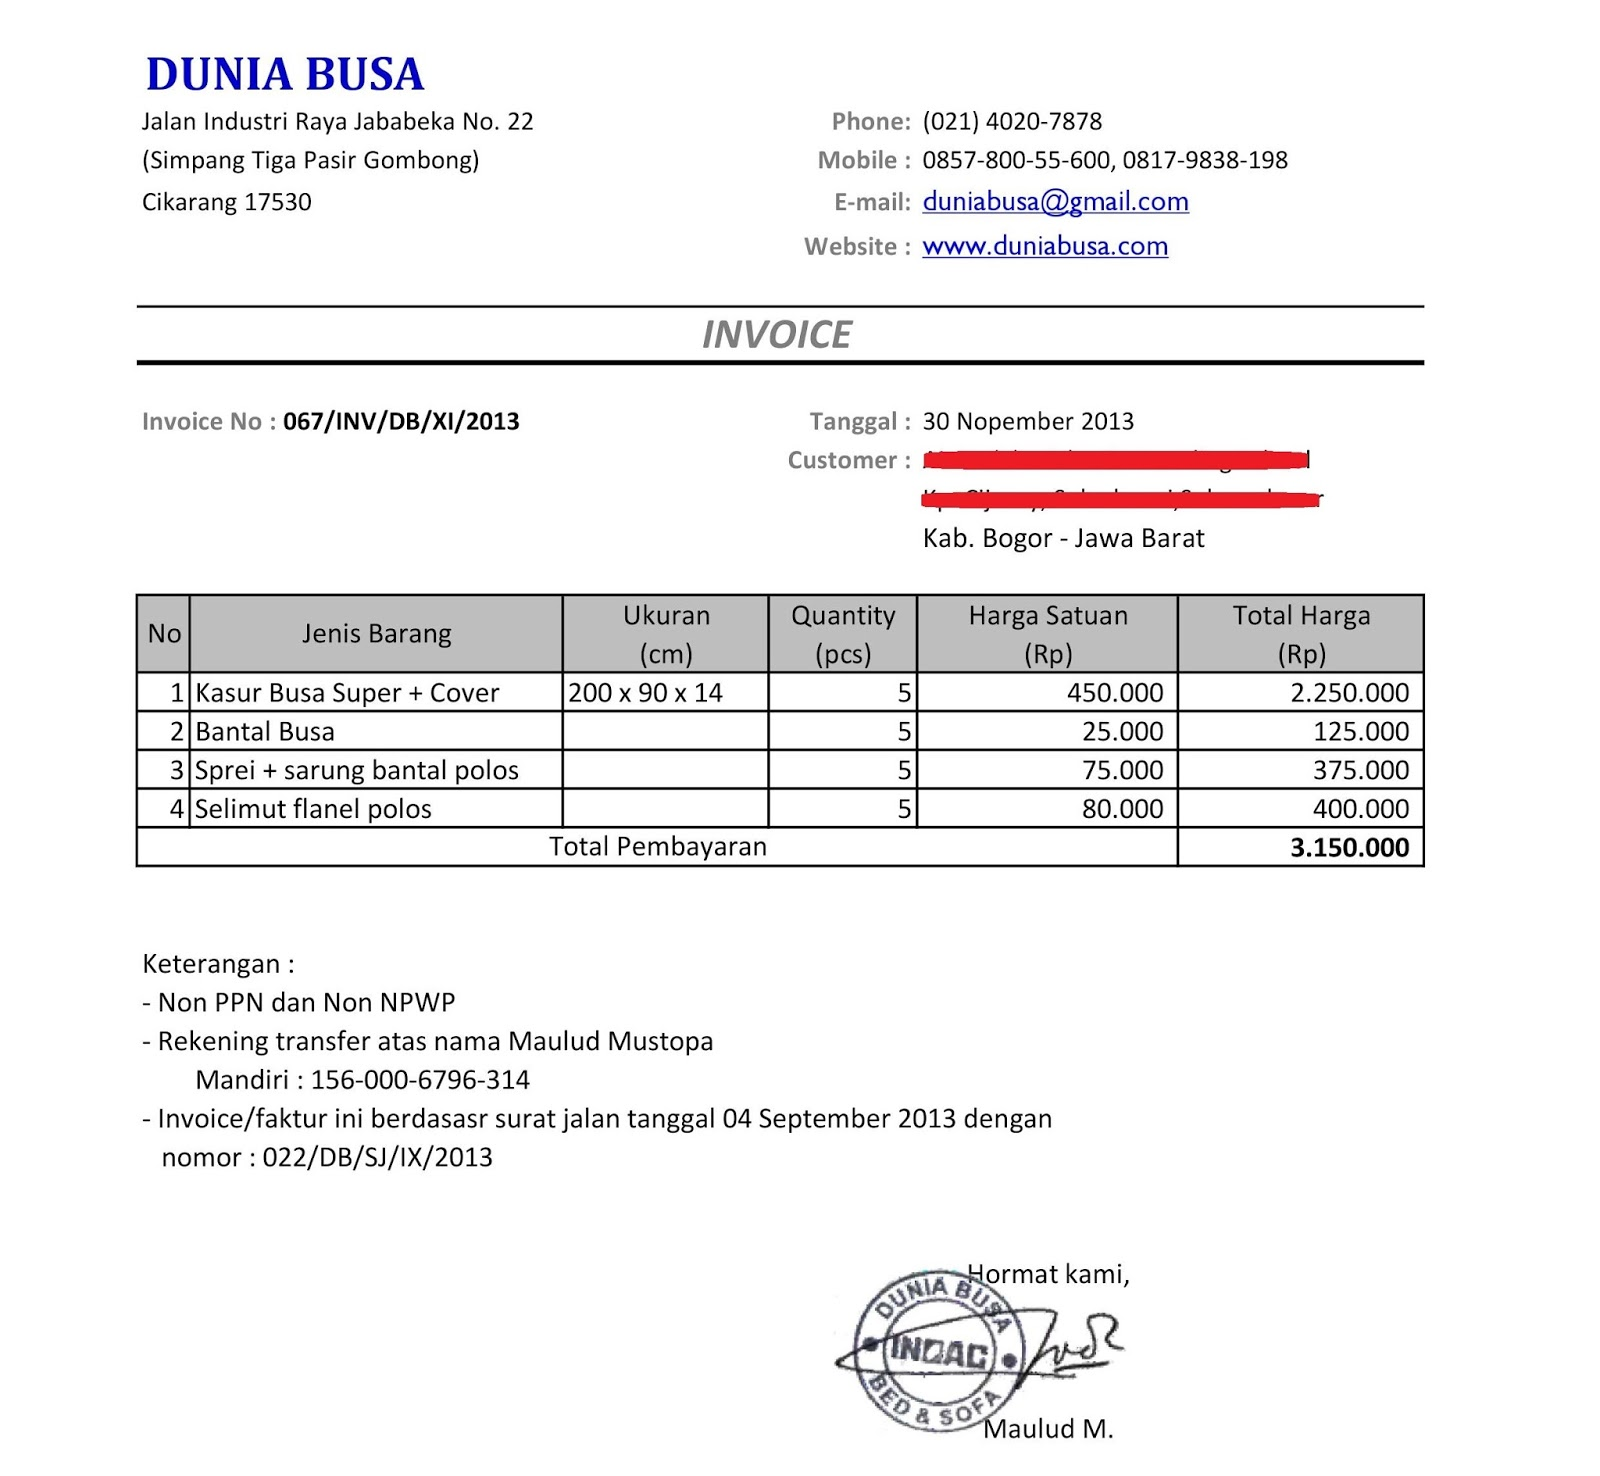 Barneybonesus  Unique Free Invoice Online  Create Invoice Online  Invoice Template  With Gorgeous Contoh Format Invoice Atau Surat Tagihan  Brankas Arsip  Free Invoice Online With Attractive Invoice Template Self Employed Also Excel  Invoice Template Free Download In Addition Invoicing Application And Invoice Form Online As Well As Dental Invoice Sample Additionally Invoicing For Mac From Sklepco With Barneybonesus  Gorgeous Free Invoice Online  Create Invoice Online  Invoice Template  With Attractive Contoh Format Invoice Atau Surat Tagihan  Brankas Arsip  Free Invoice Online And Unique Invoice Template Self Employed Also Excel  Invoice Template Free Download In Addition Invoicing Application From Sklepco